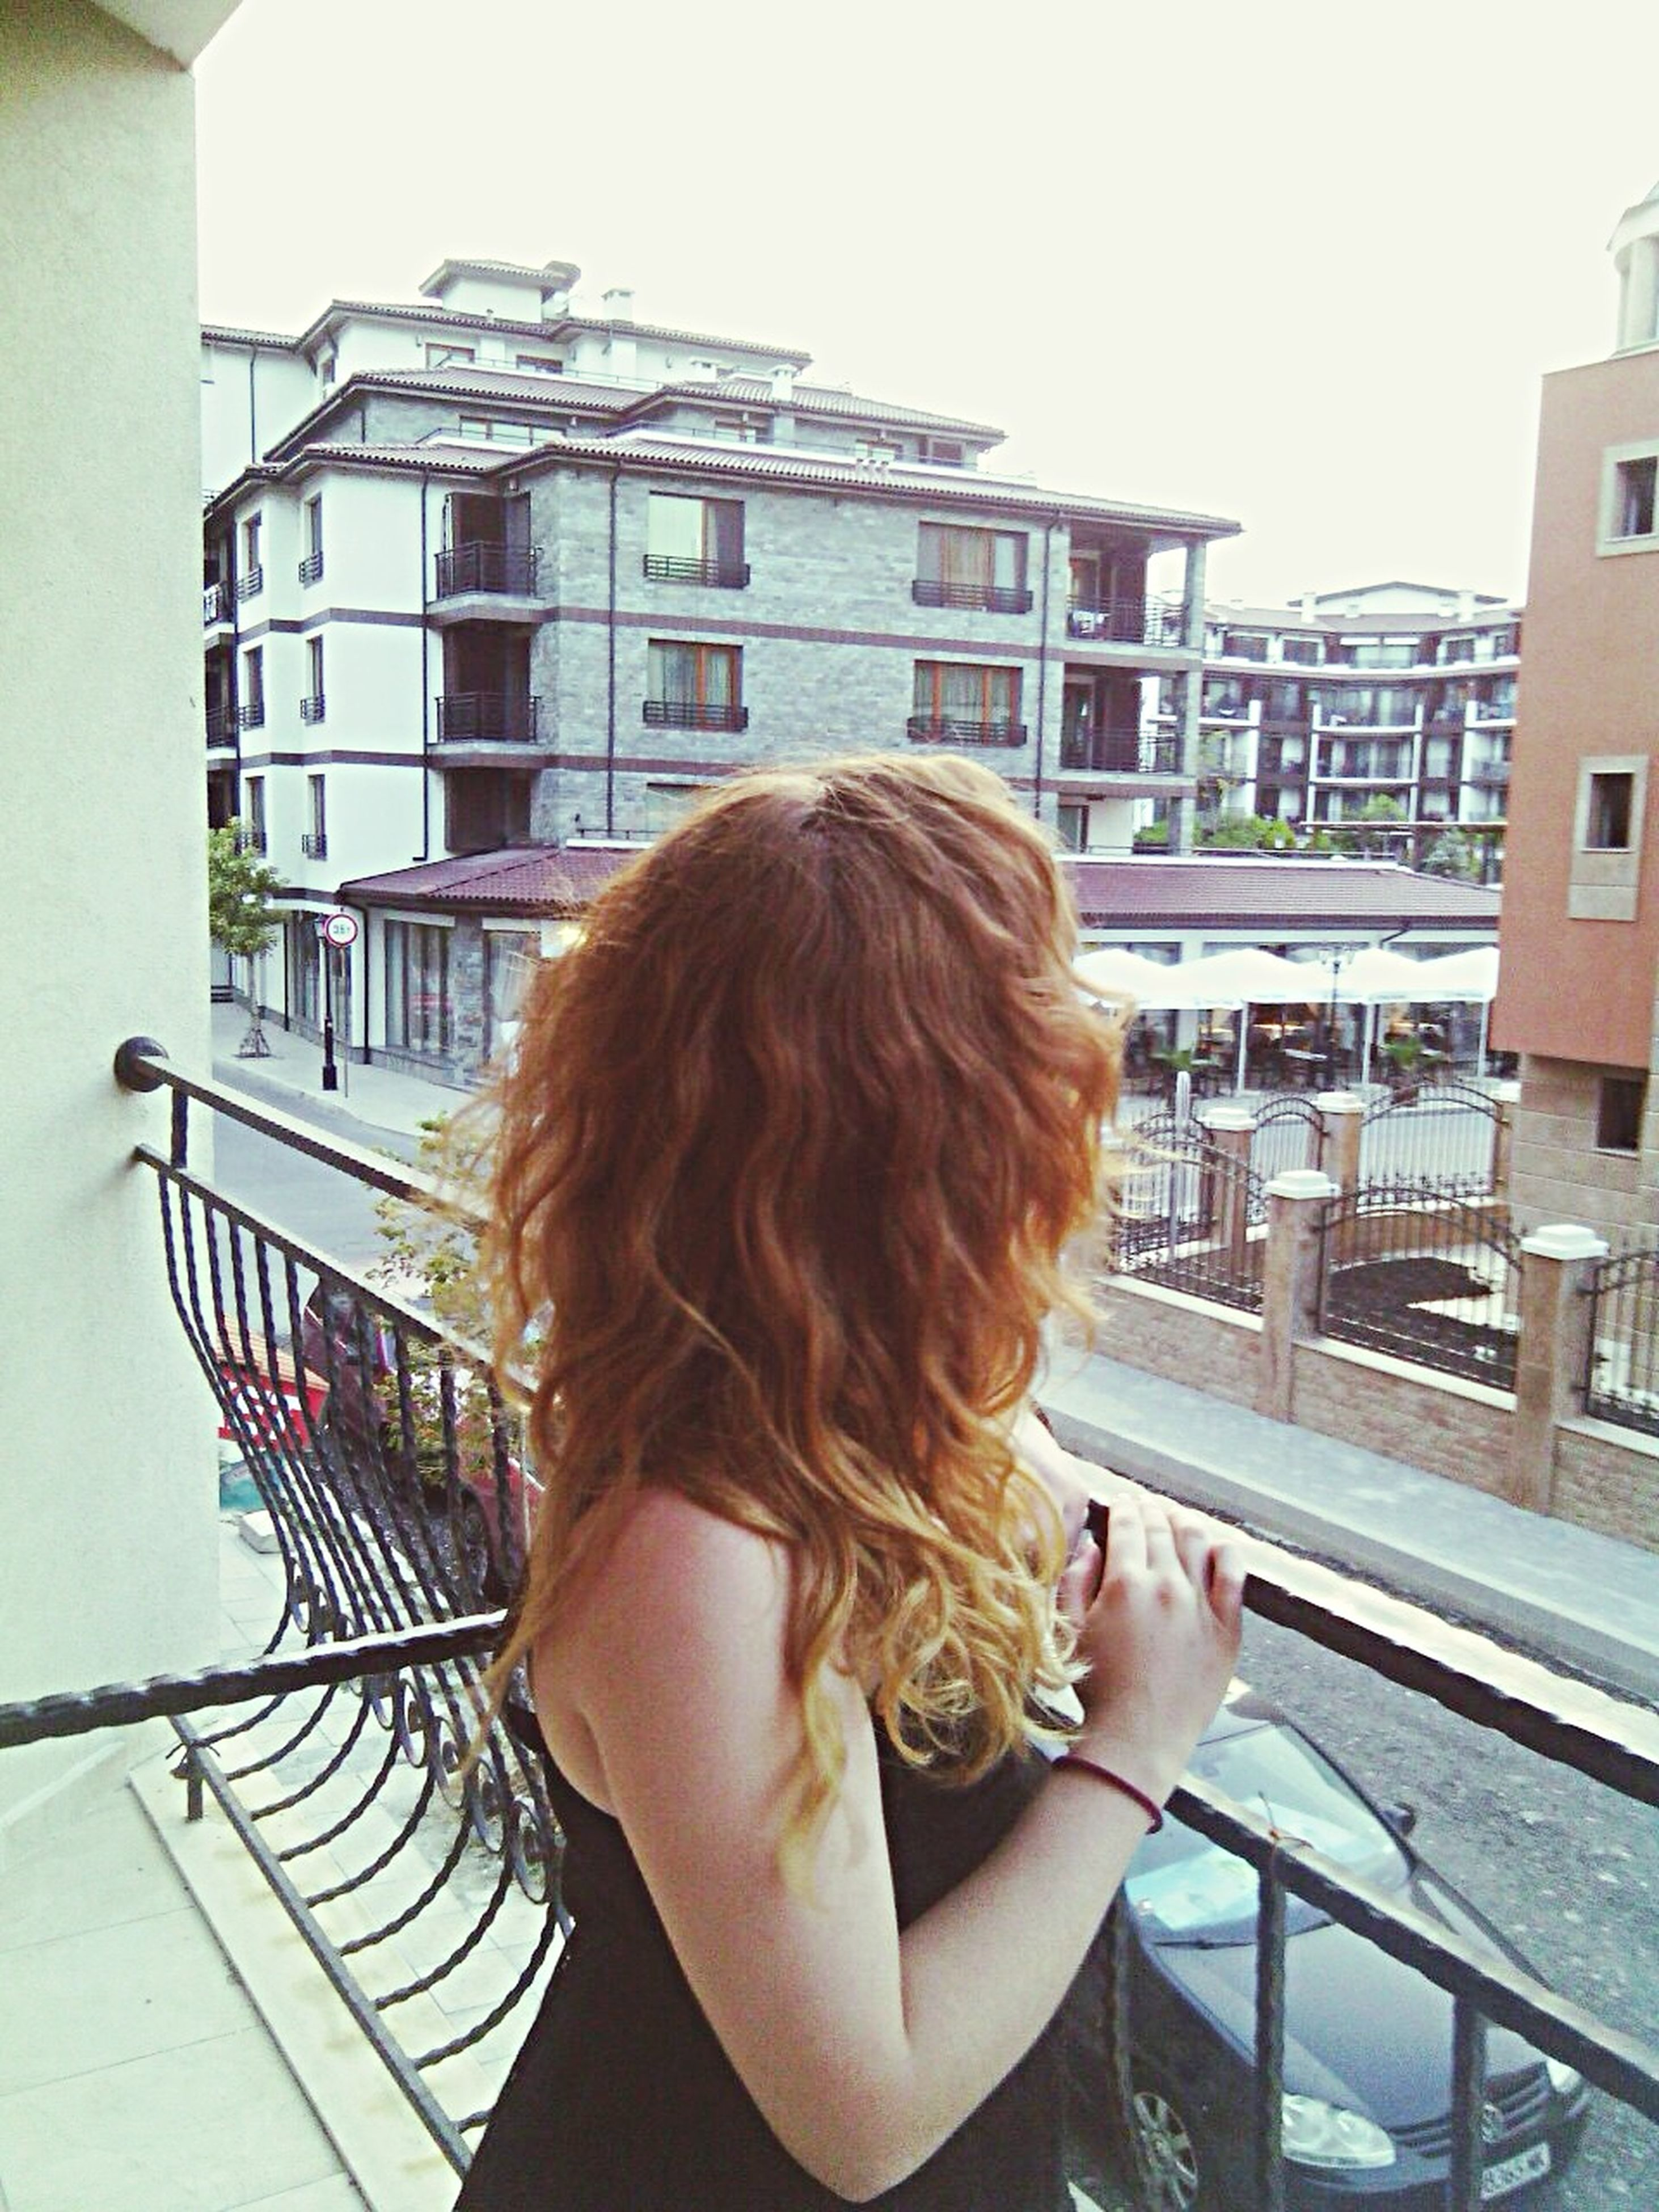 architecture, lifestyles, built structure, building exterior, railing, leisure activity, young adult, casual clothing, person, young women, long hair, standing, rear view, building, waist up, sitting, city